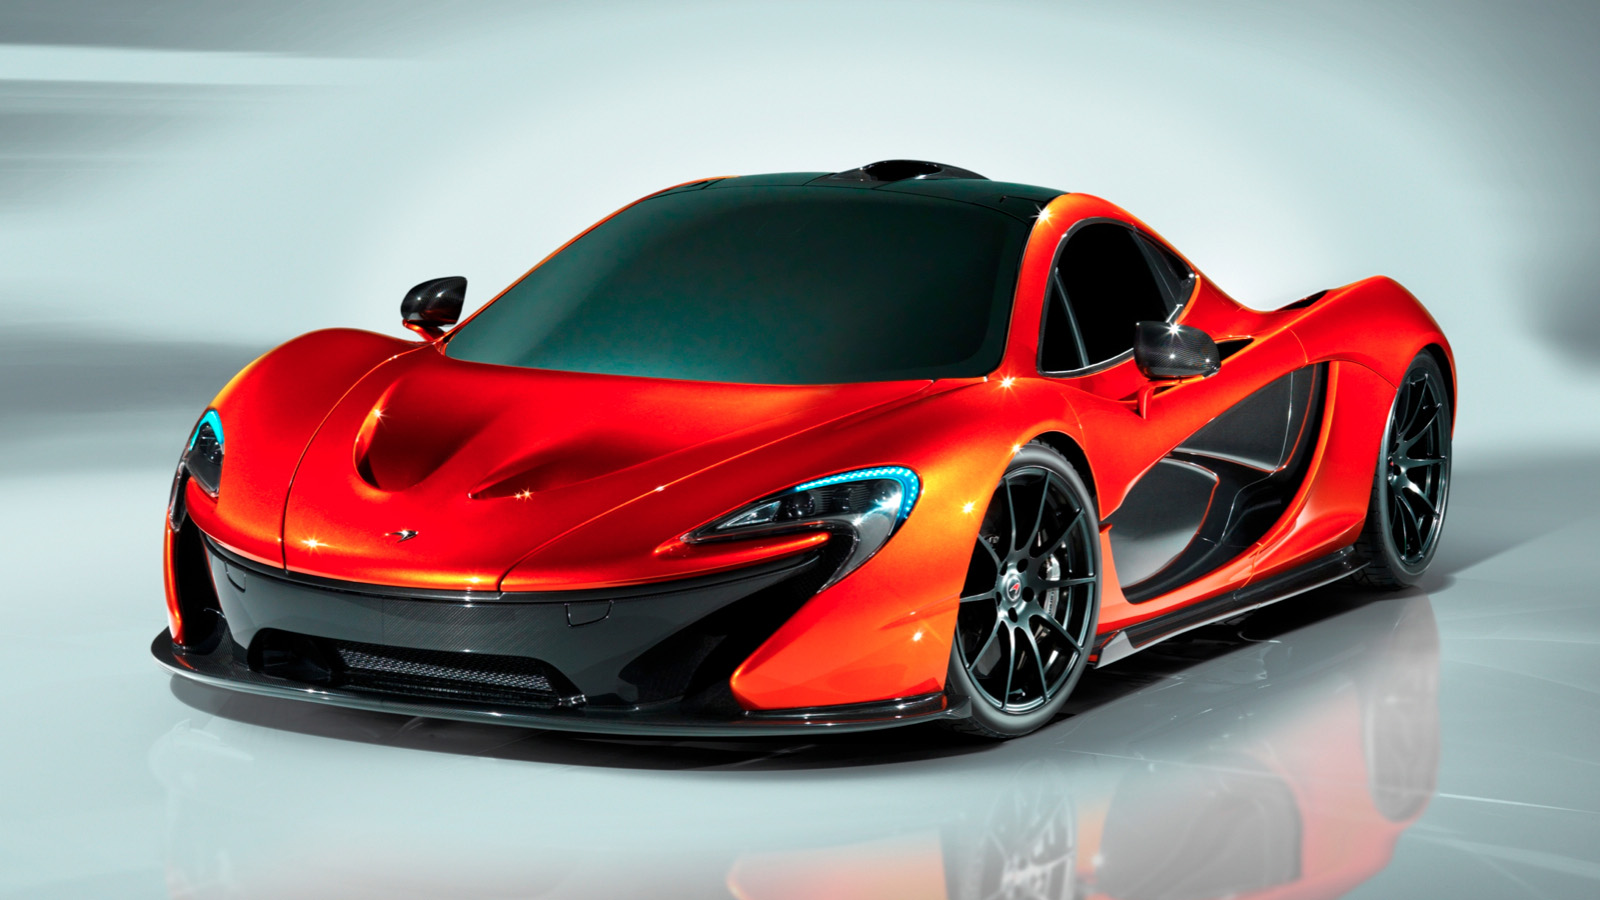 McLaren P1 official figures have high claims